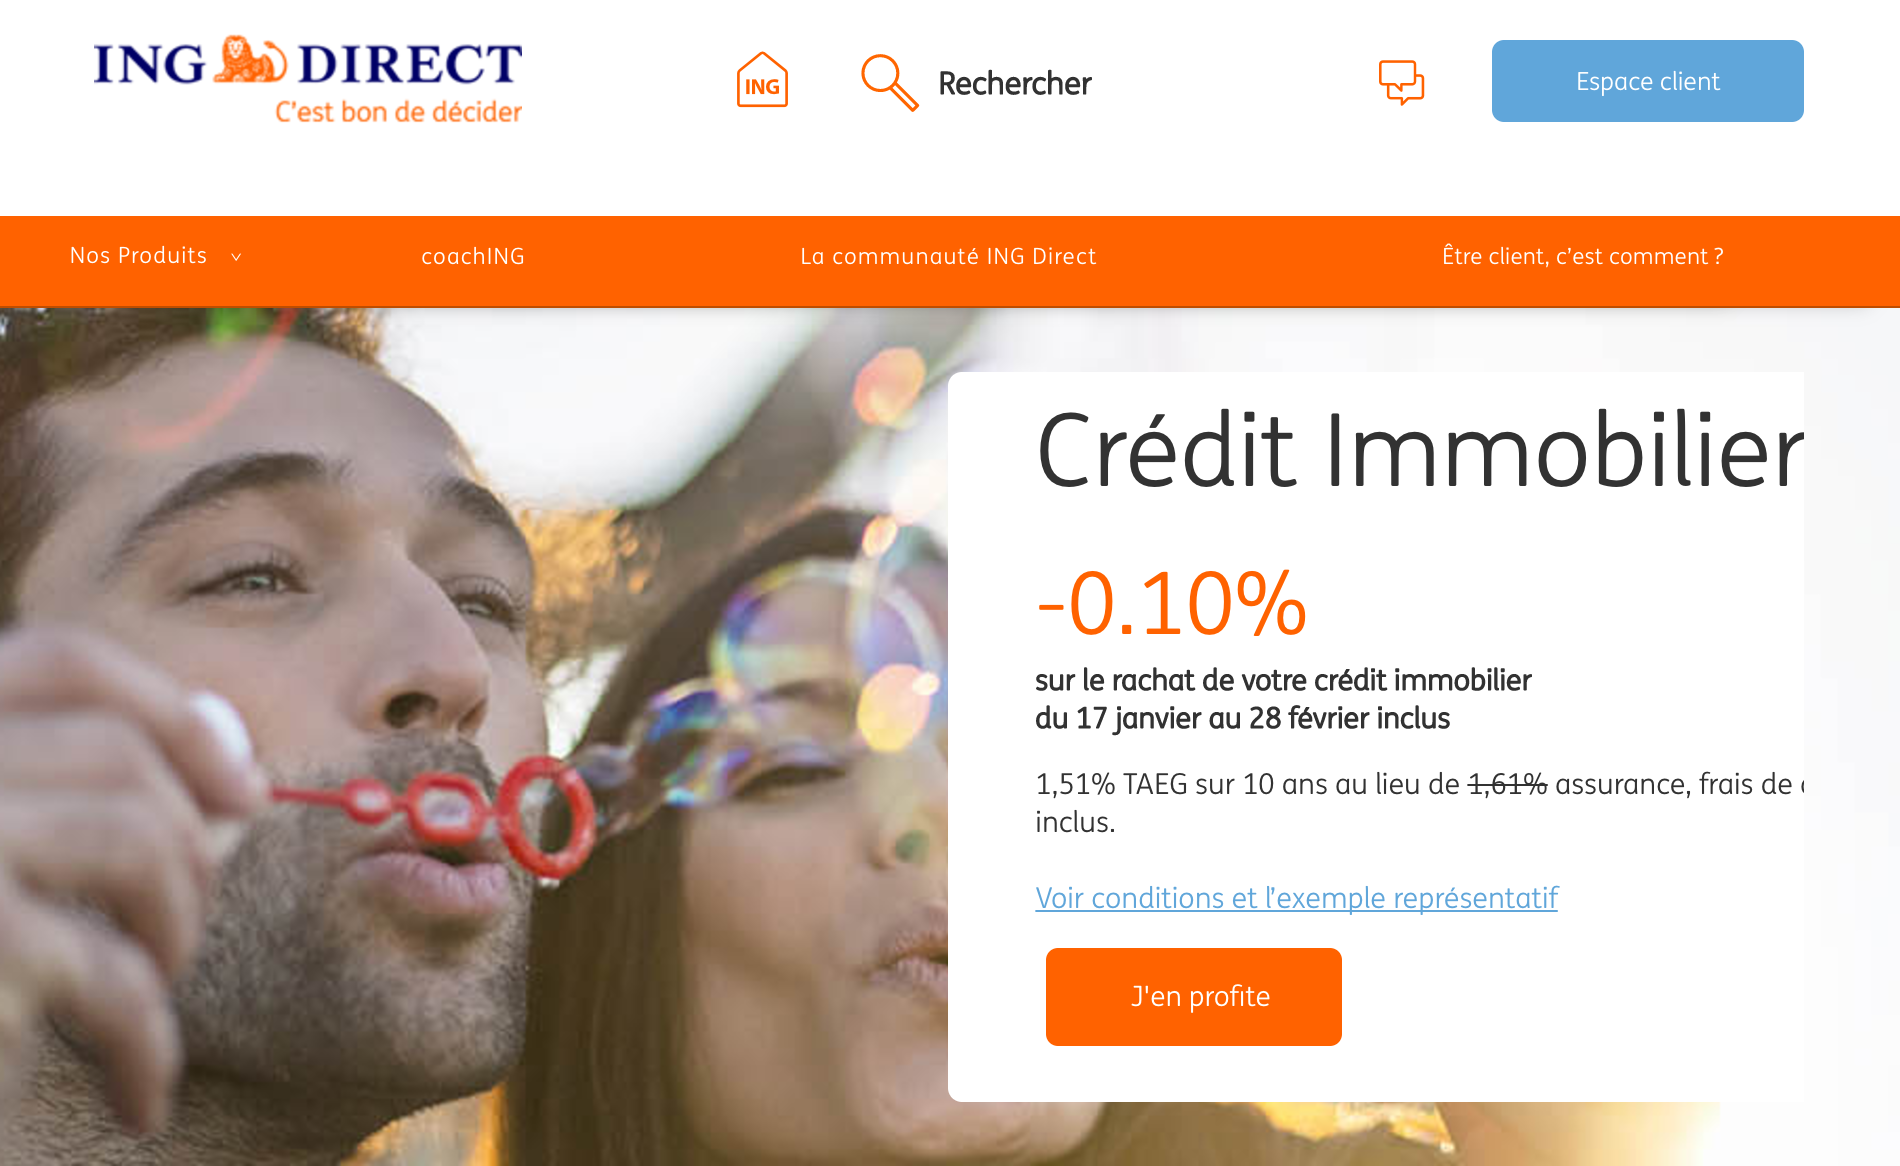 Rachat Credit immobilier ING Direct